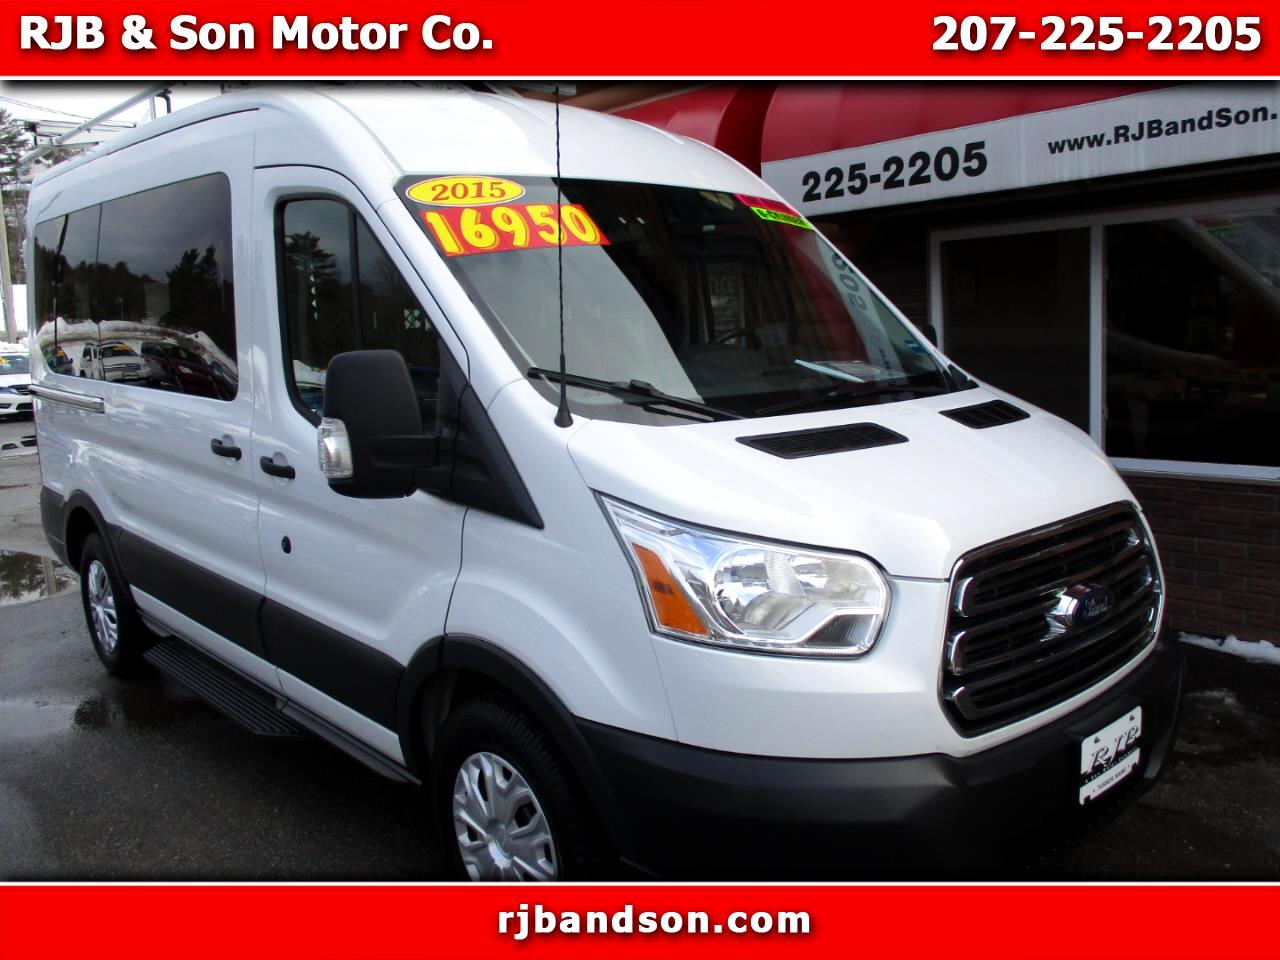 Ford Transit 150 Wagon Med. Roof XLT w/Sliding Pass. 130-in. WB 2015